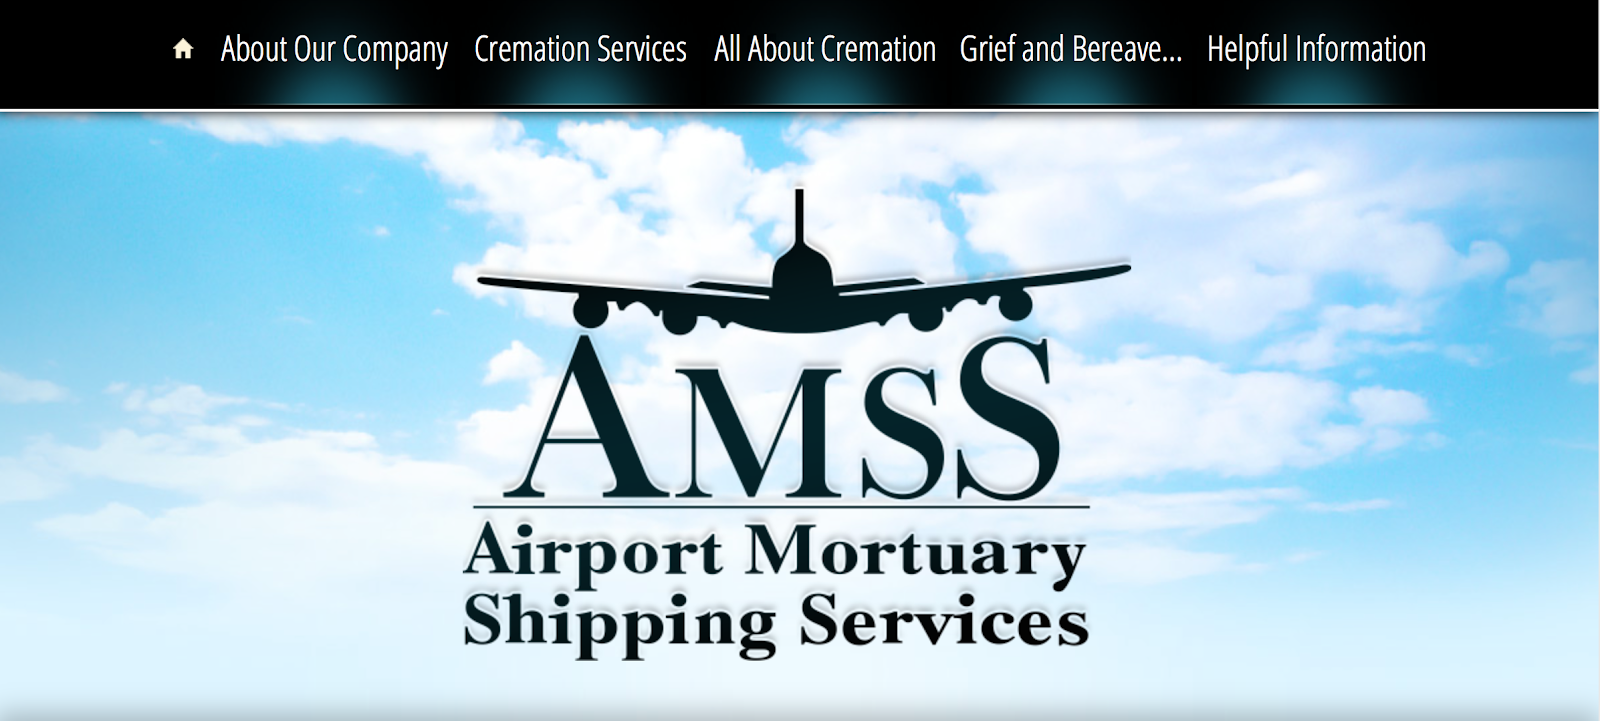 Airport Mortuary Shipping Services